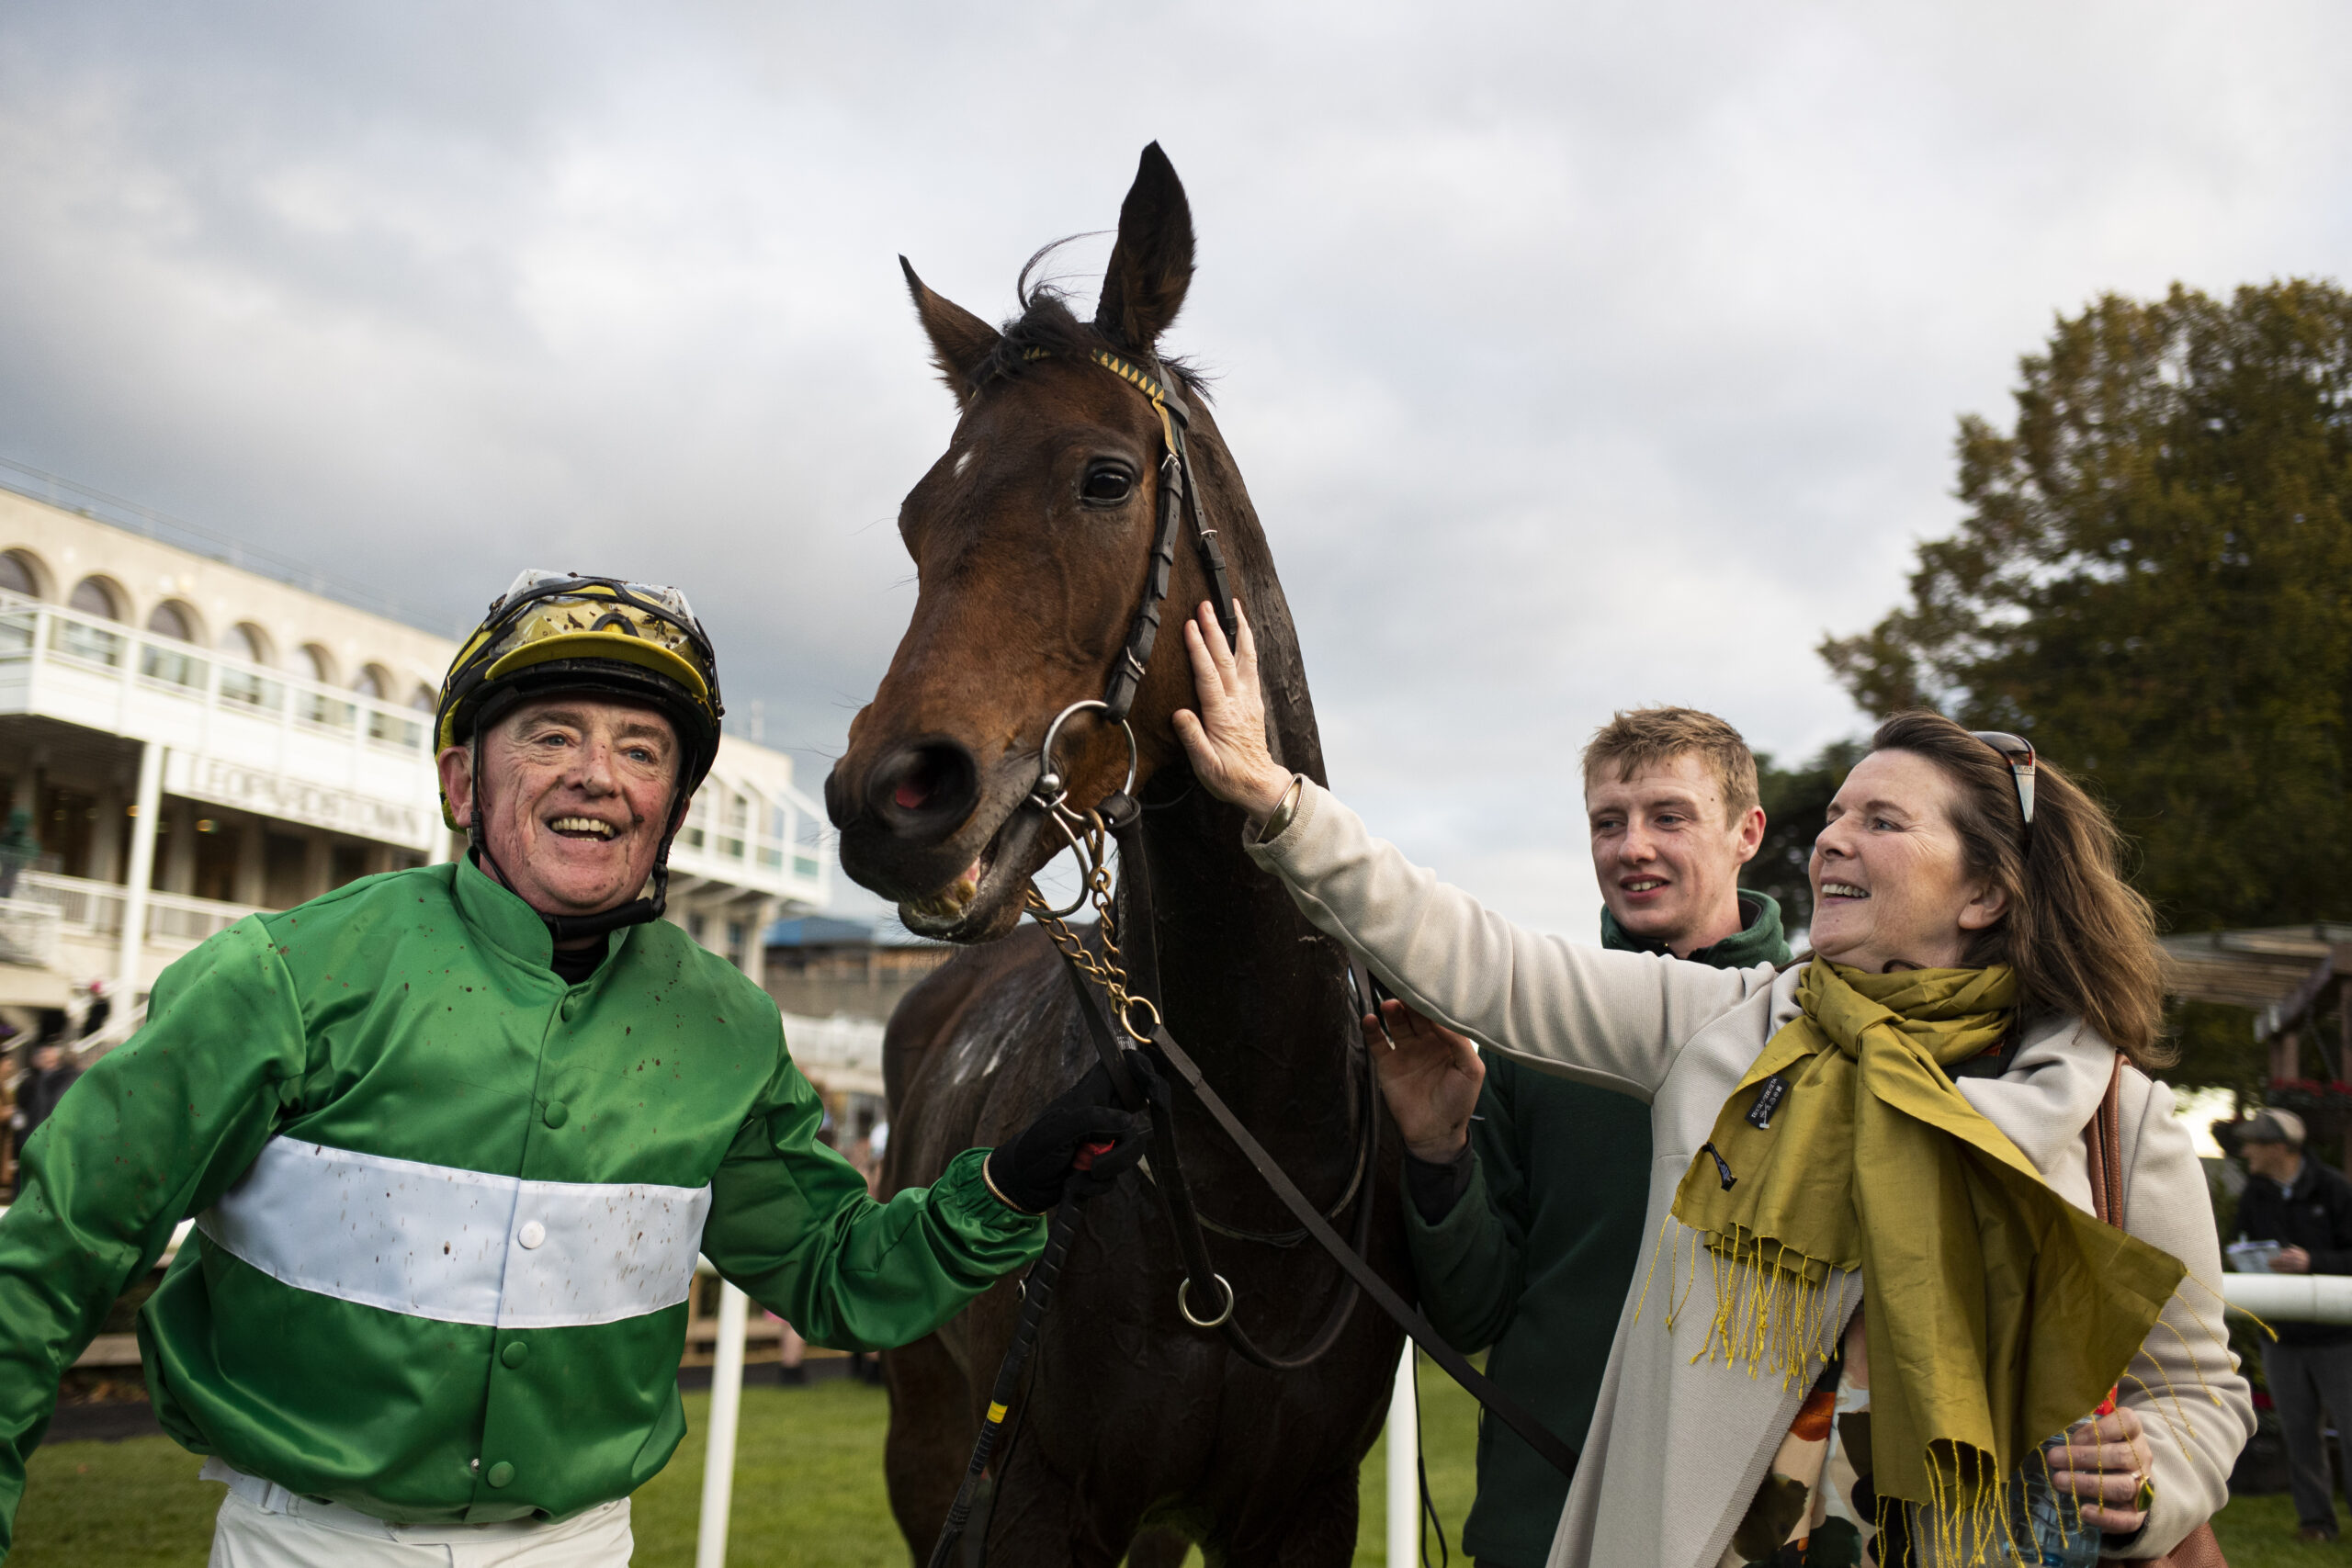 Racehorse owner Paddy Woods takes glory in IIJ Charity Race Series